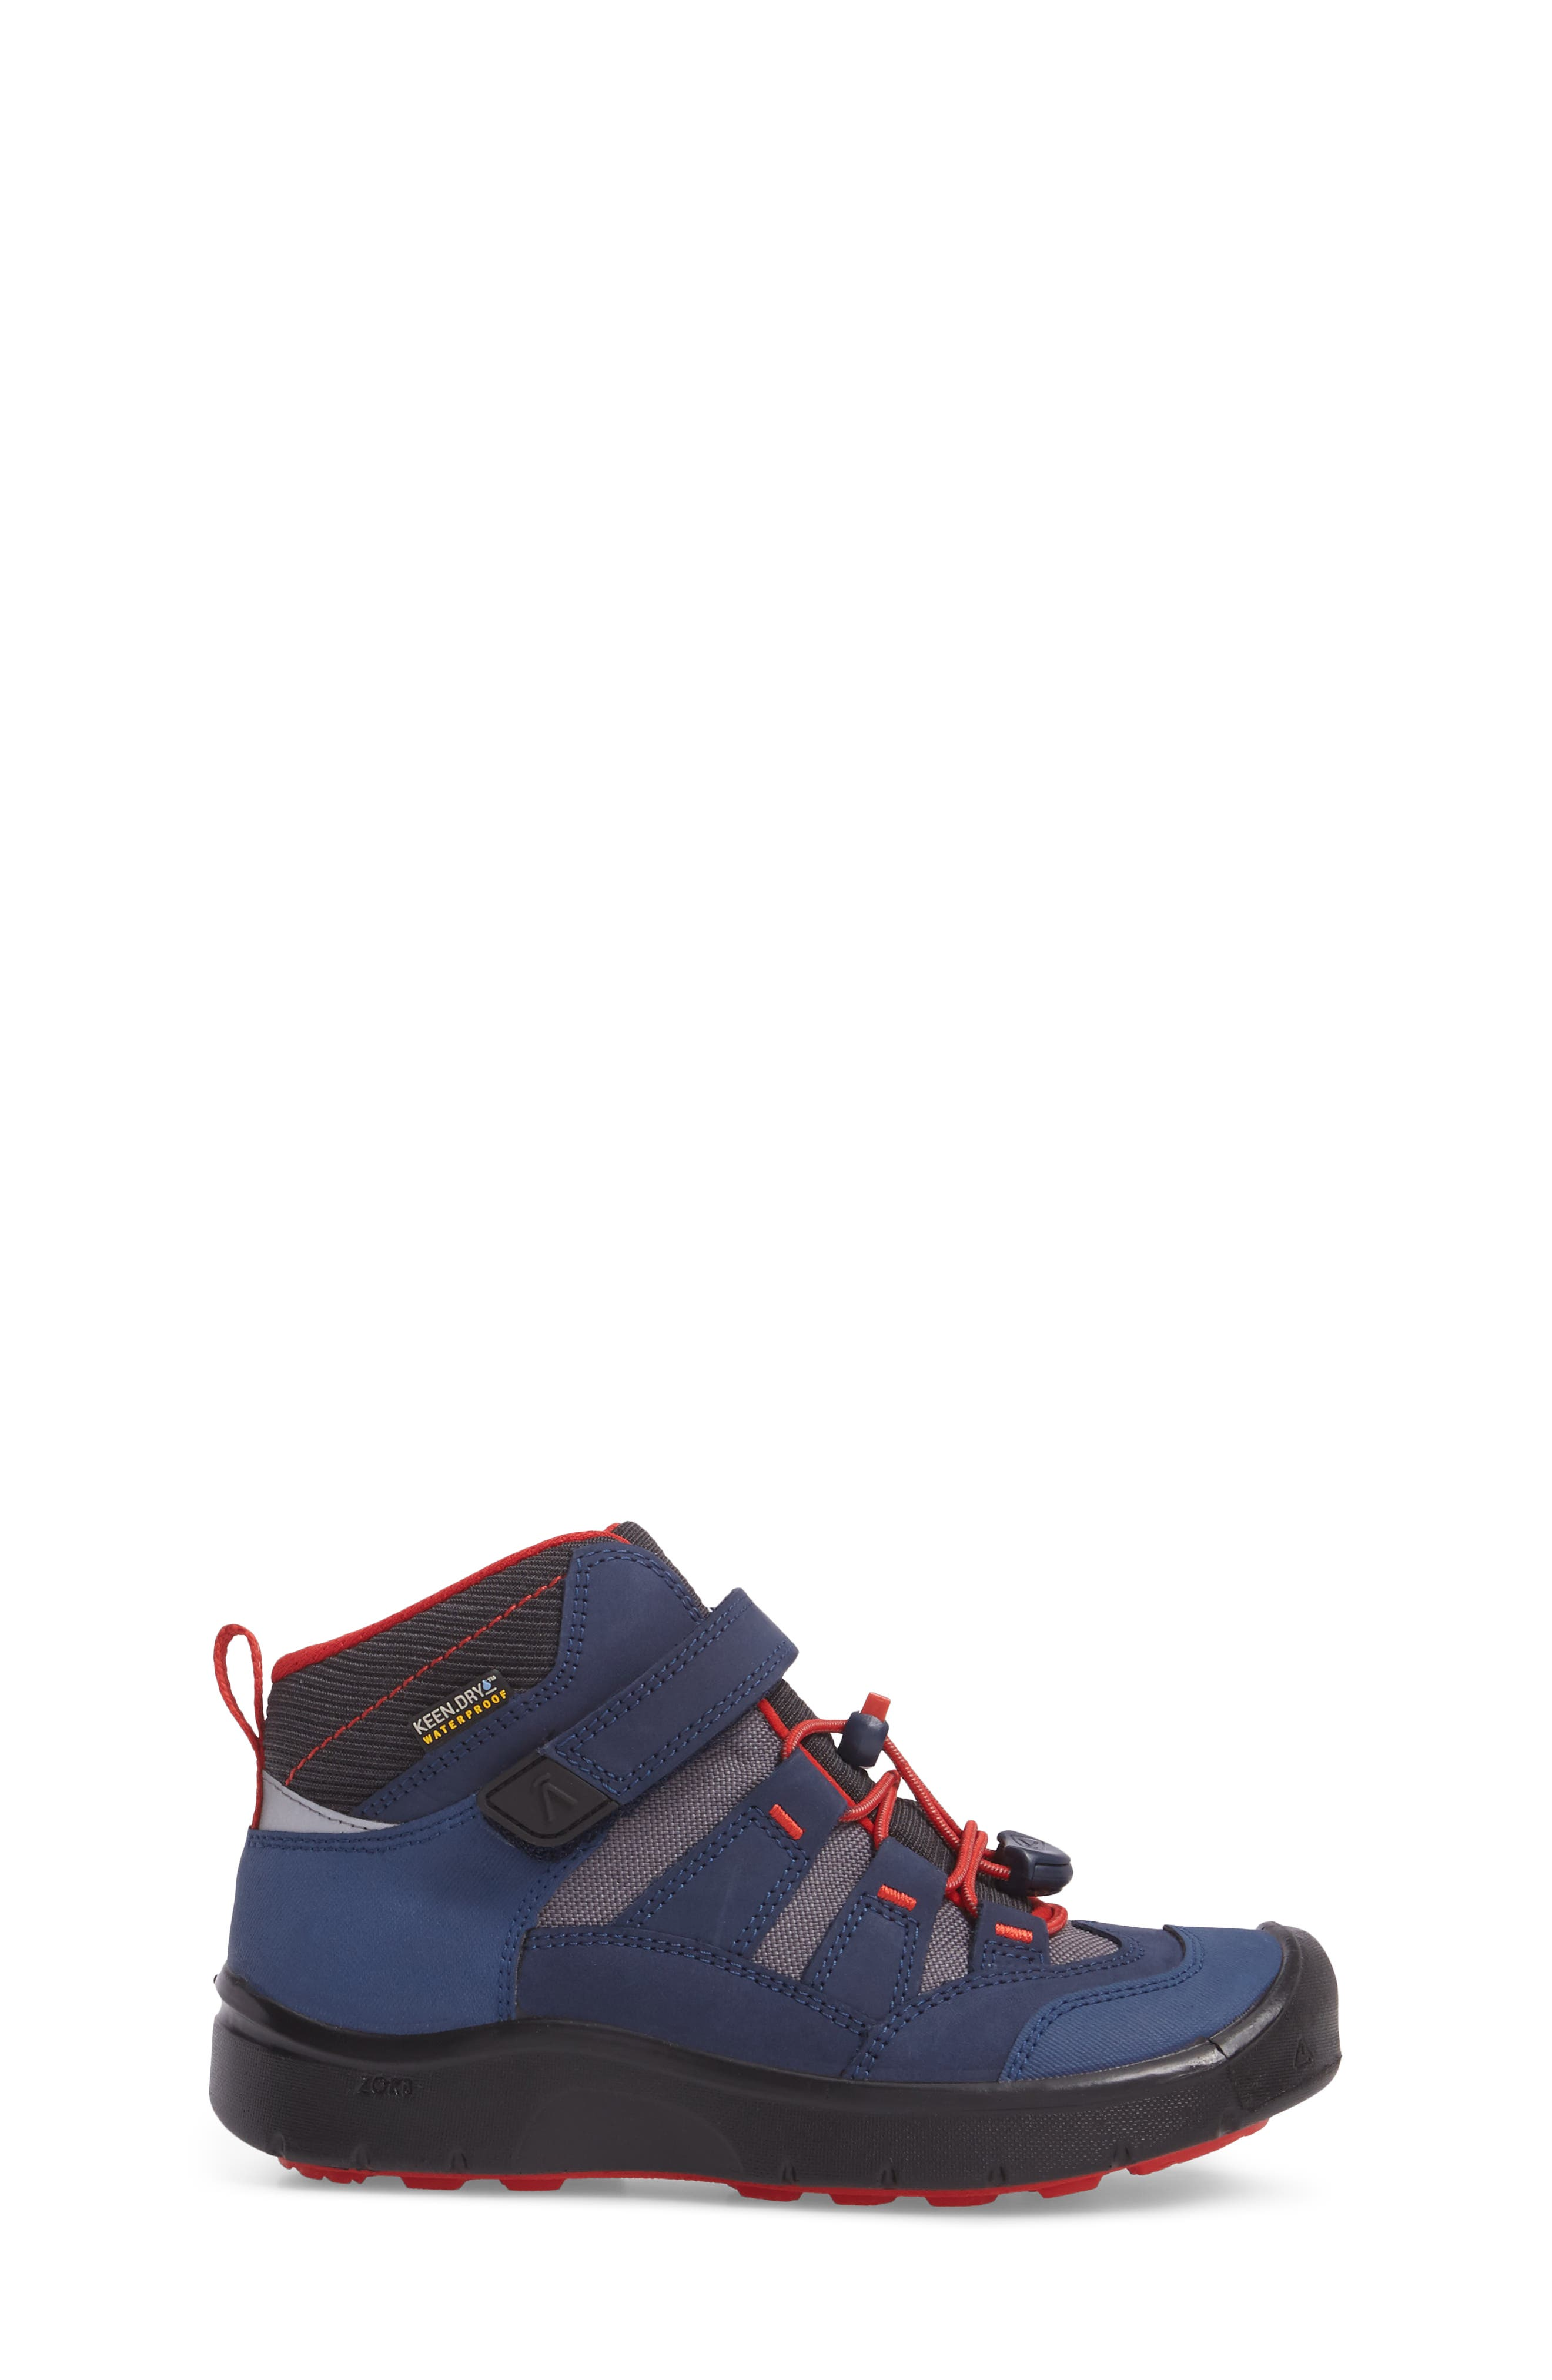 Hikeport Strap Waterproof Mid Boot,                             Alternate thumbnail 11, color,